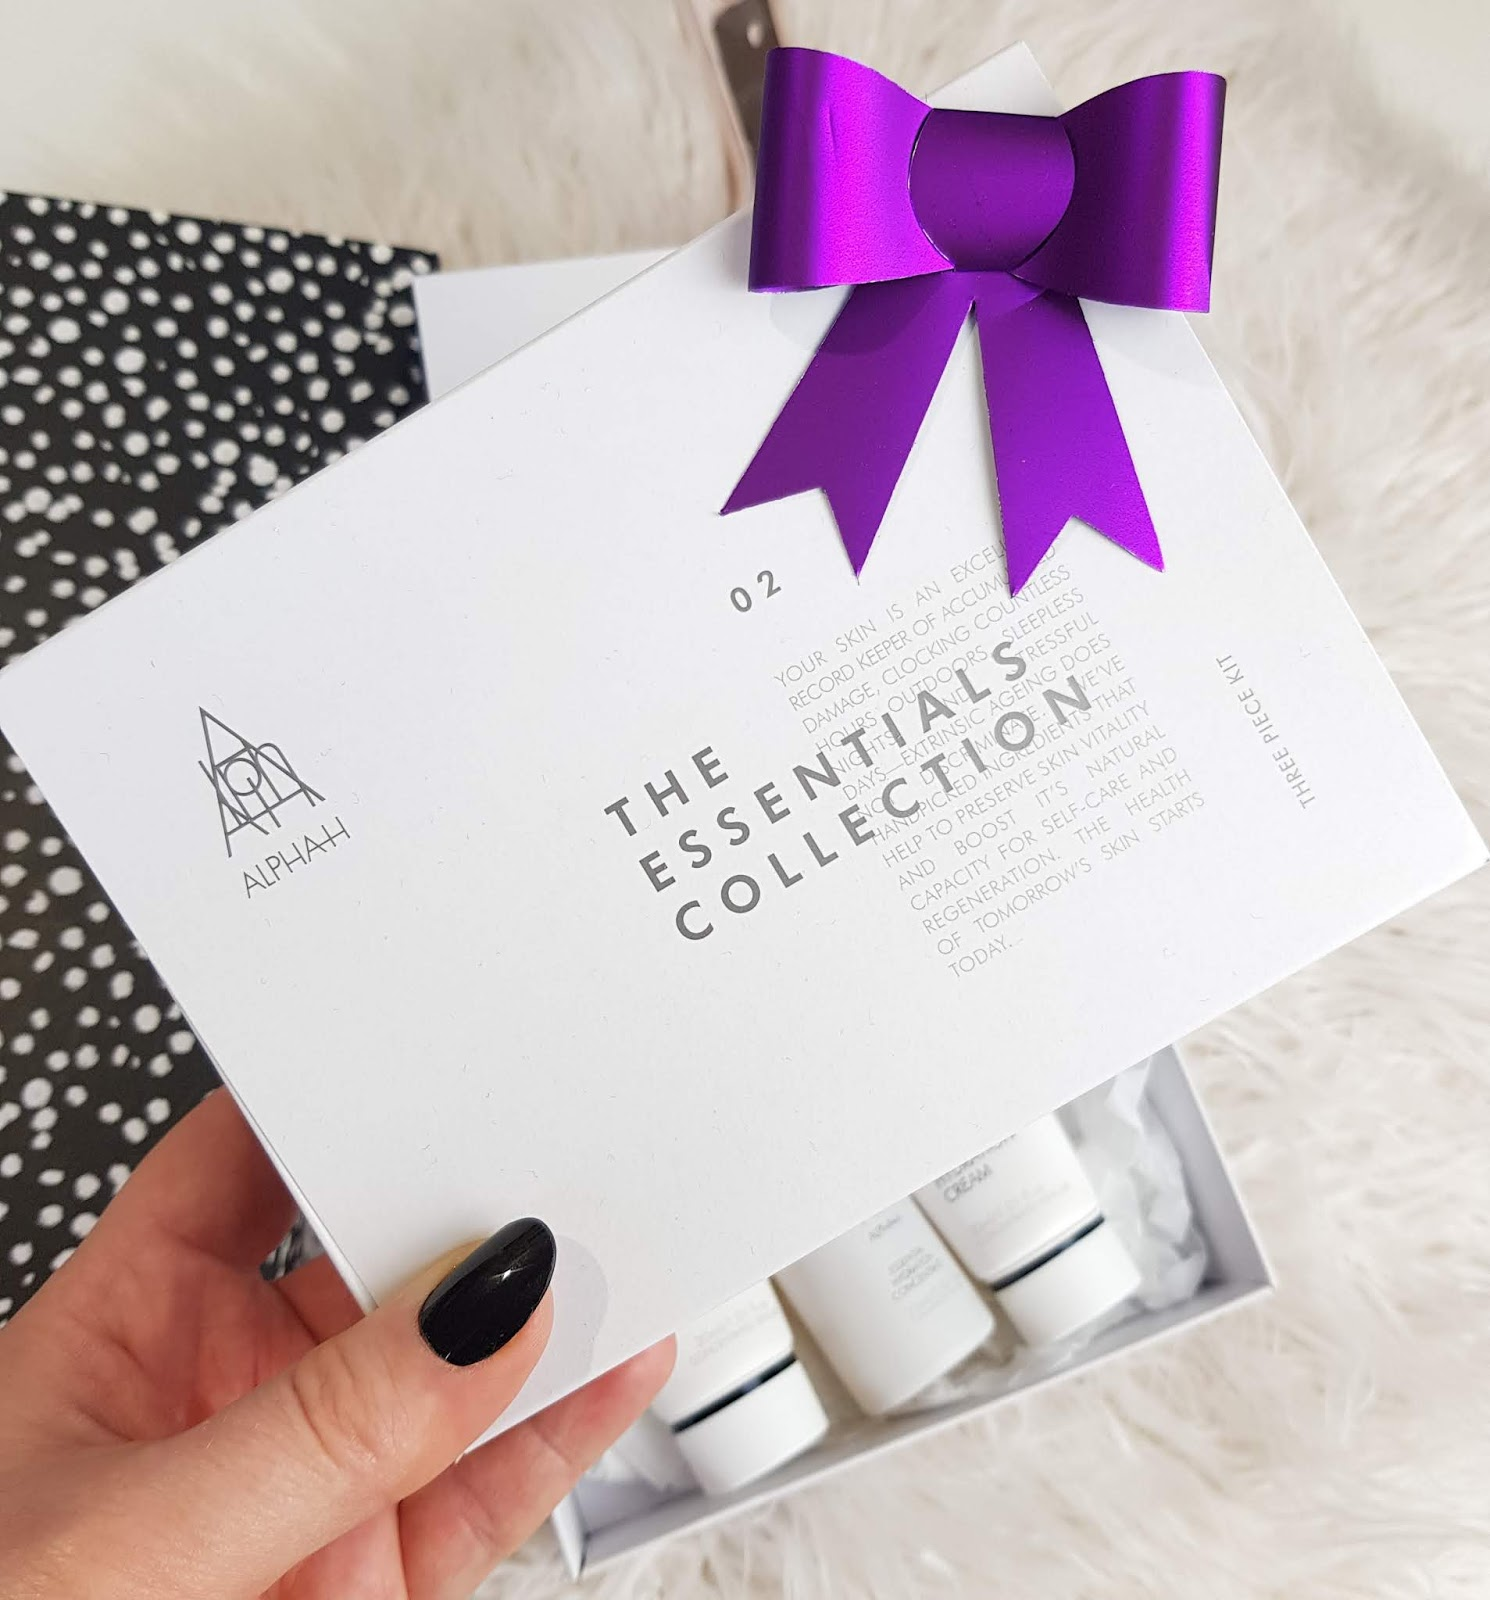 Alpha H The Essentials Collection Gift Set From Cosmetics Online Ireland